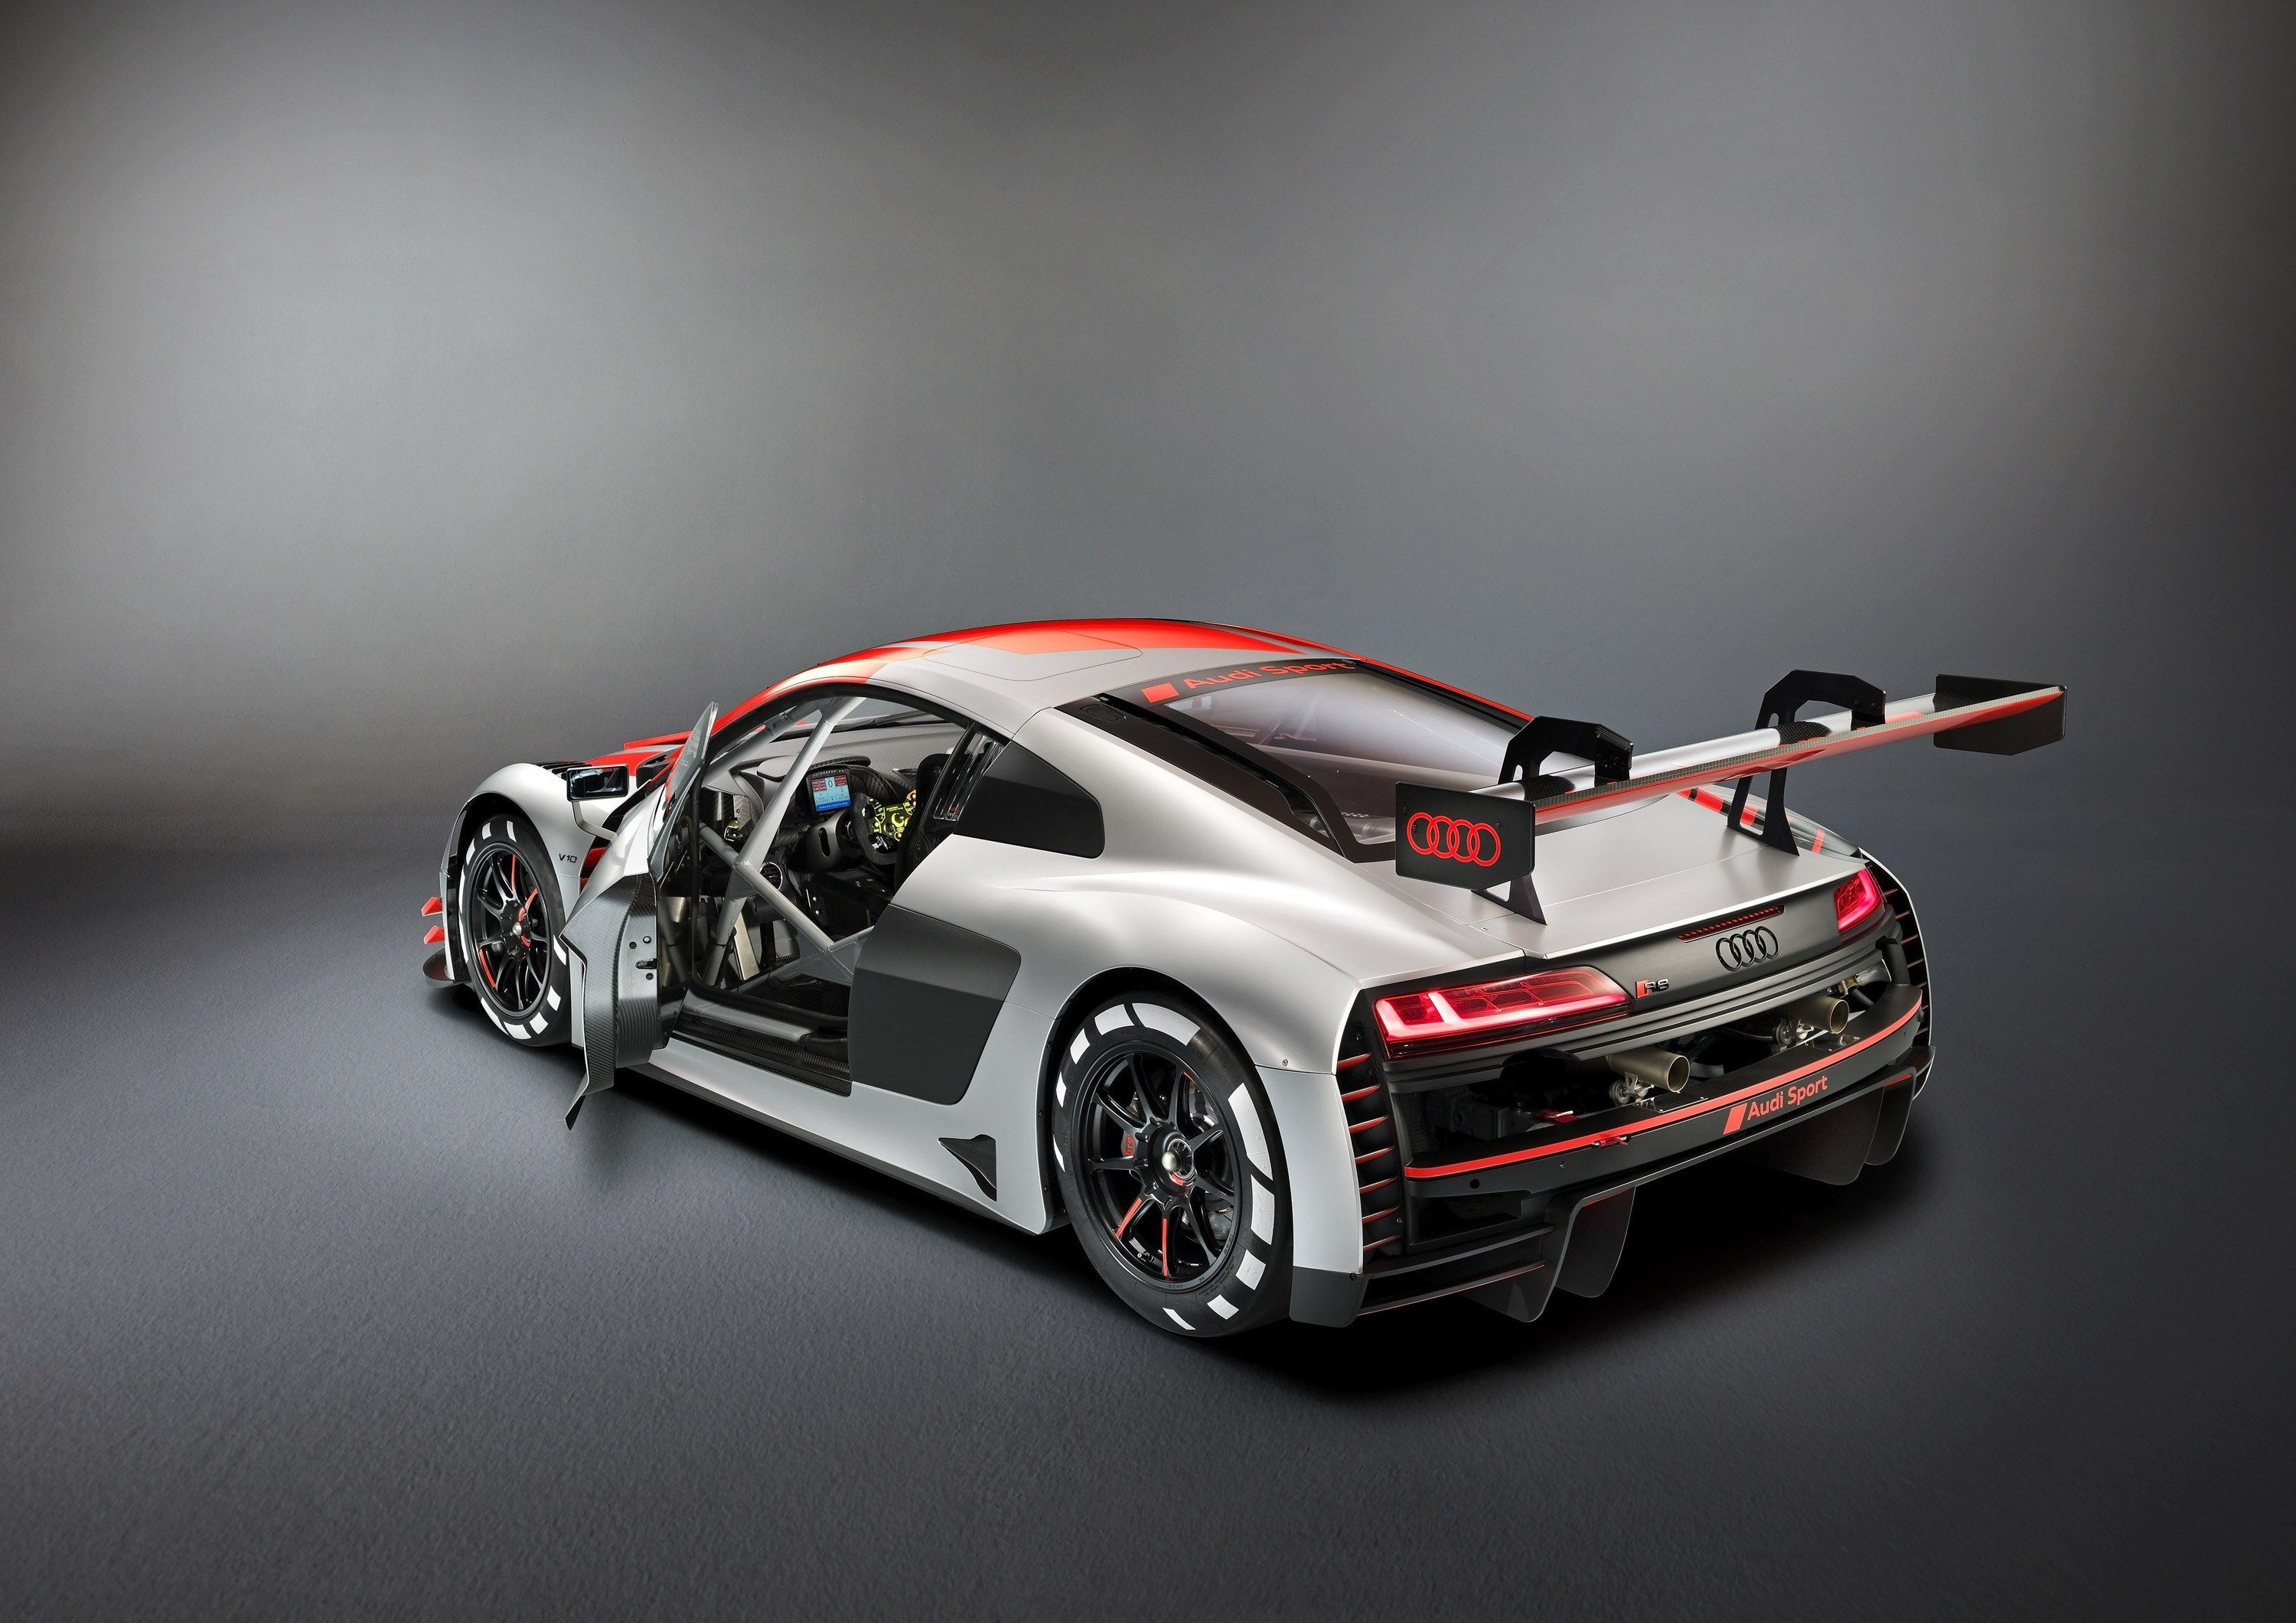 New This New Audi R8 Lms Gt3 Serves As A Preview For The 2020 Audi R8 New Audi R8 Audi Audi R8